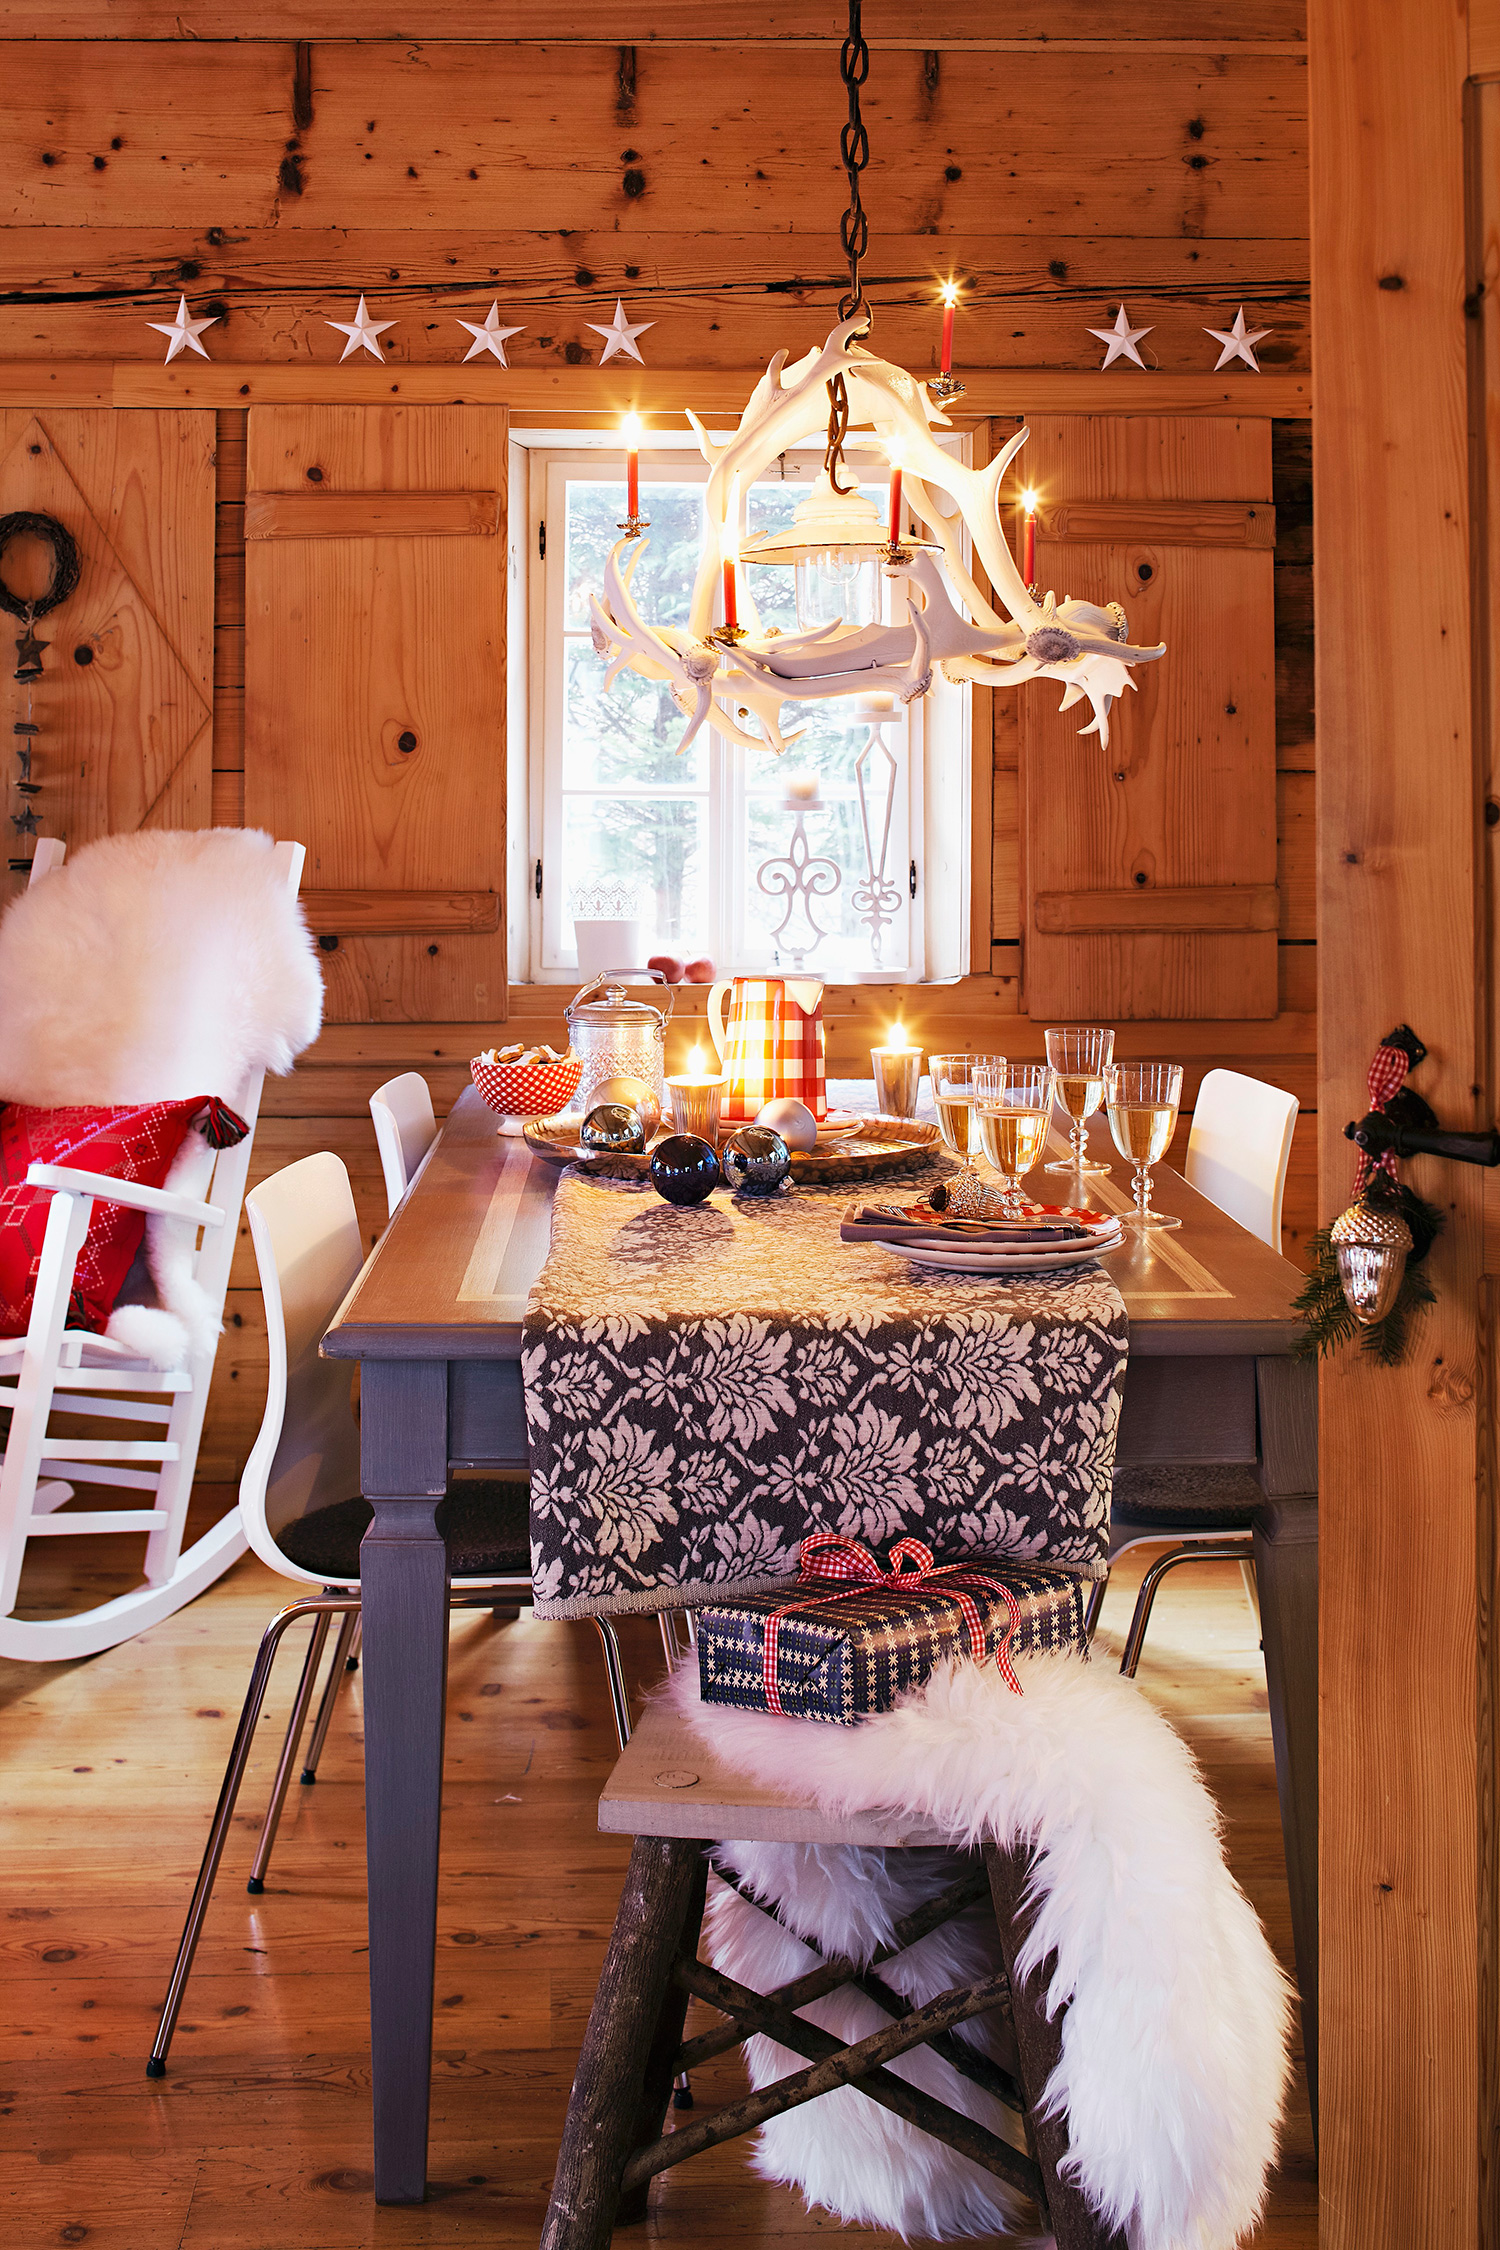 Chalet in montagna vacanze di natale westwing magazine - Natale country decorazioni ...